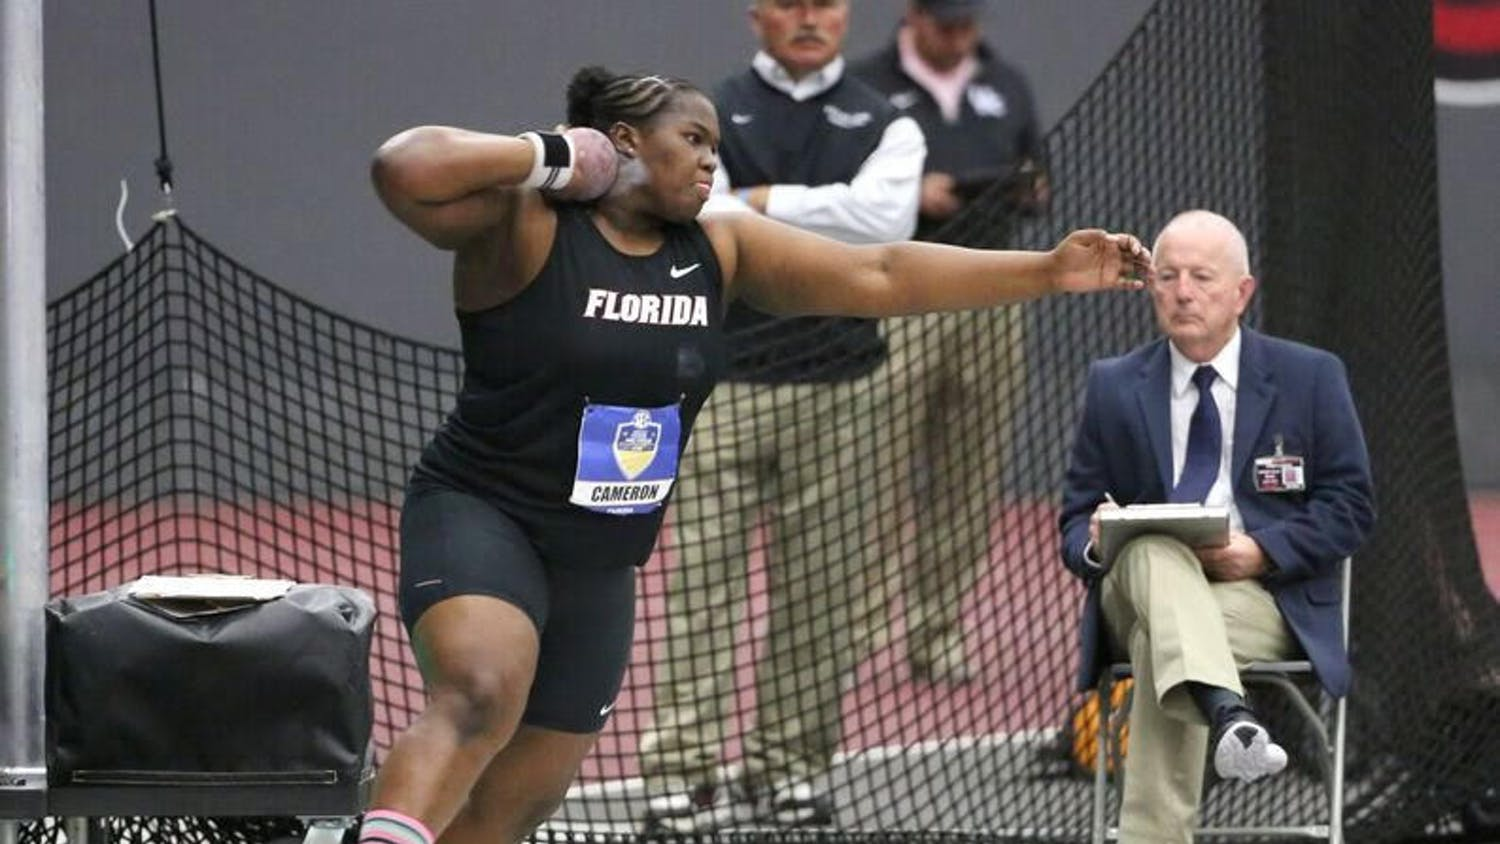 UF thrower Lloydricia Cameron throws the shot put during the 2016 SEC Indoor Track and Field Championships.